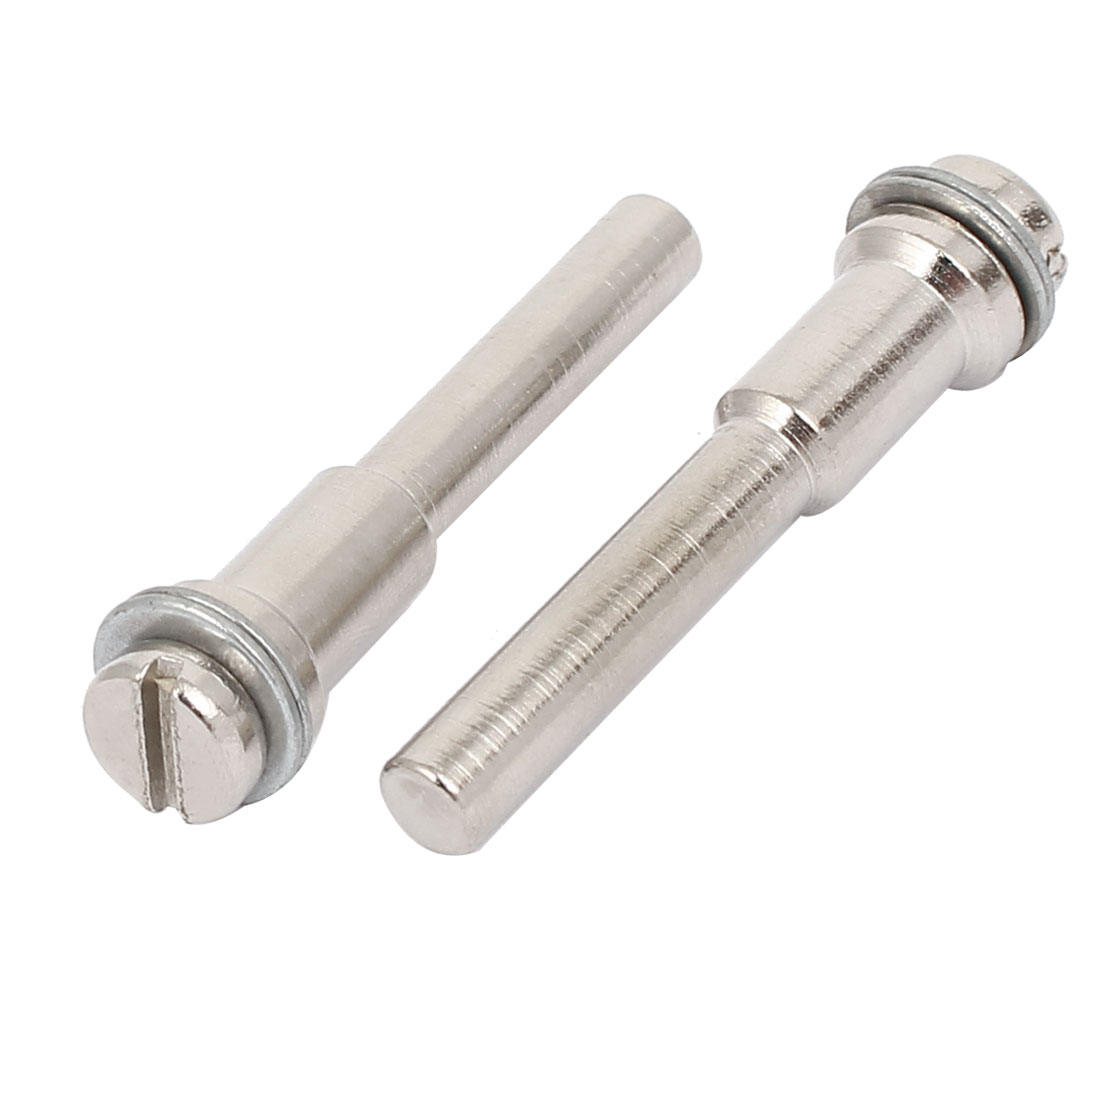 6mm Shank Dia Mandrel 2pcs for Diamond Rotary Grinding Wheel Disc